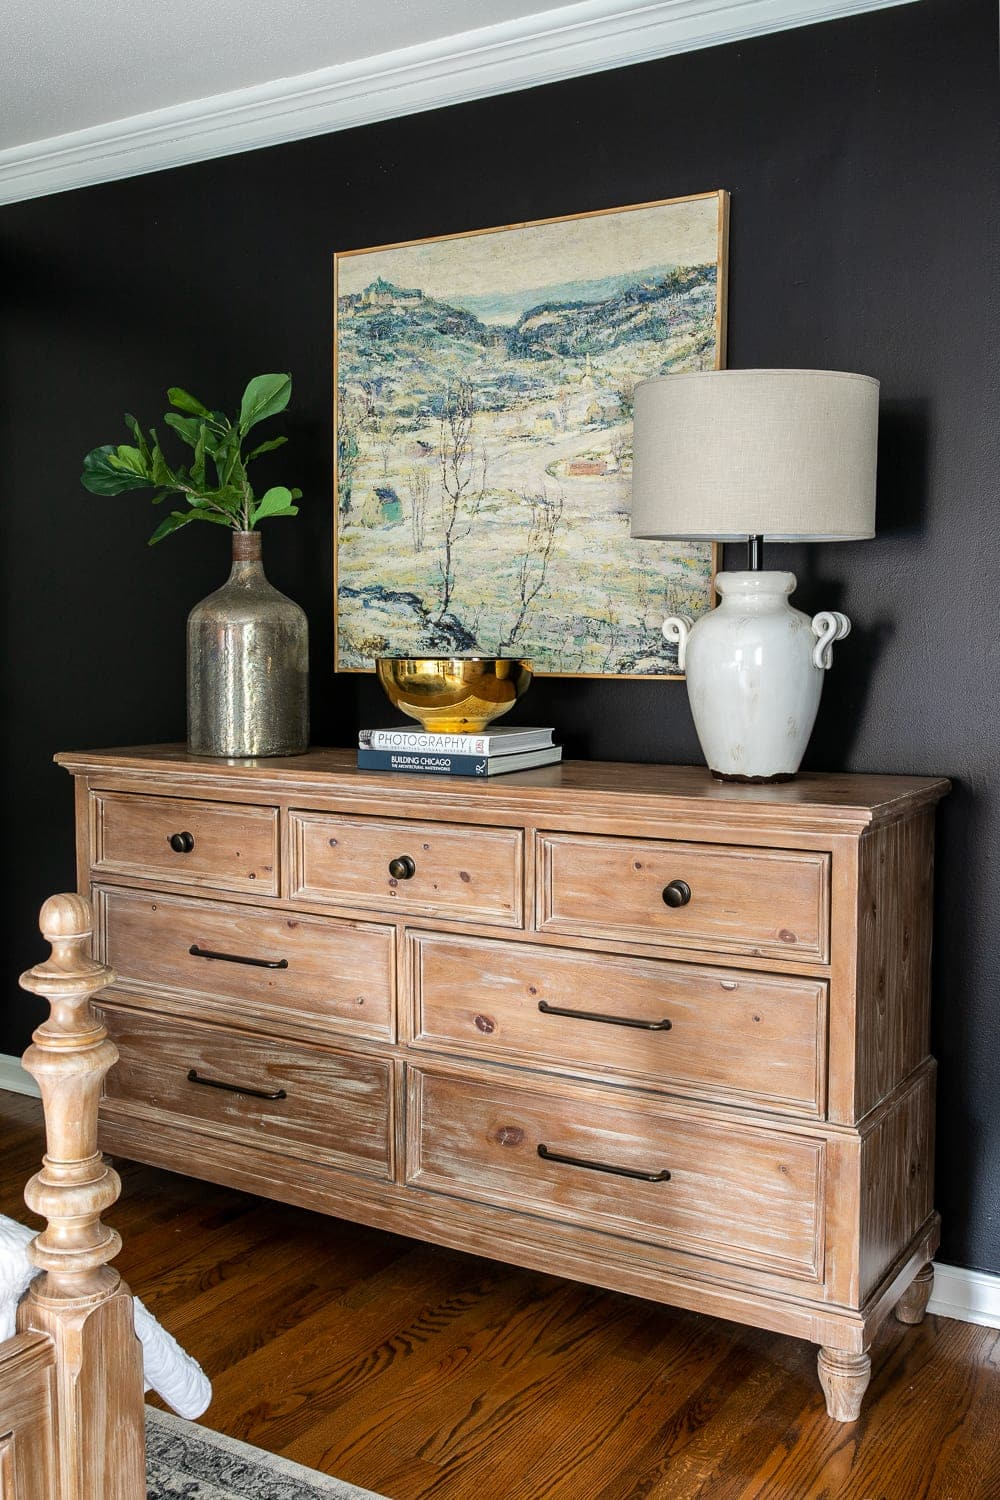 DIY large scale art for under $50 and master bedroom dresser